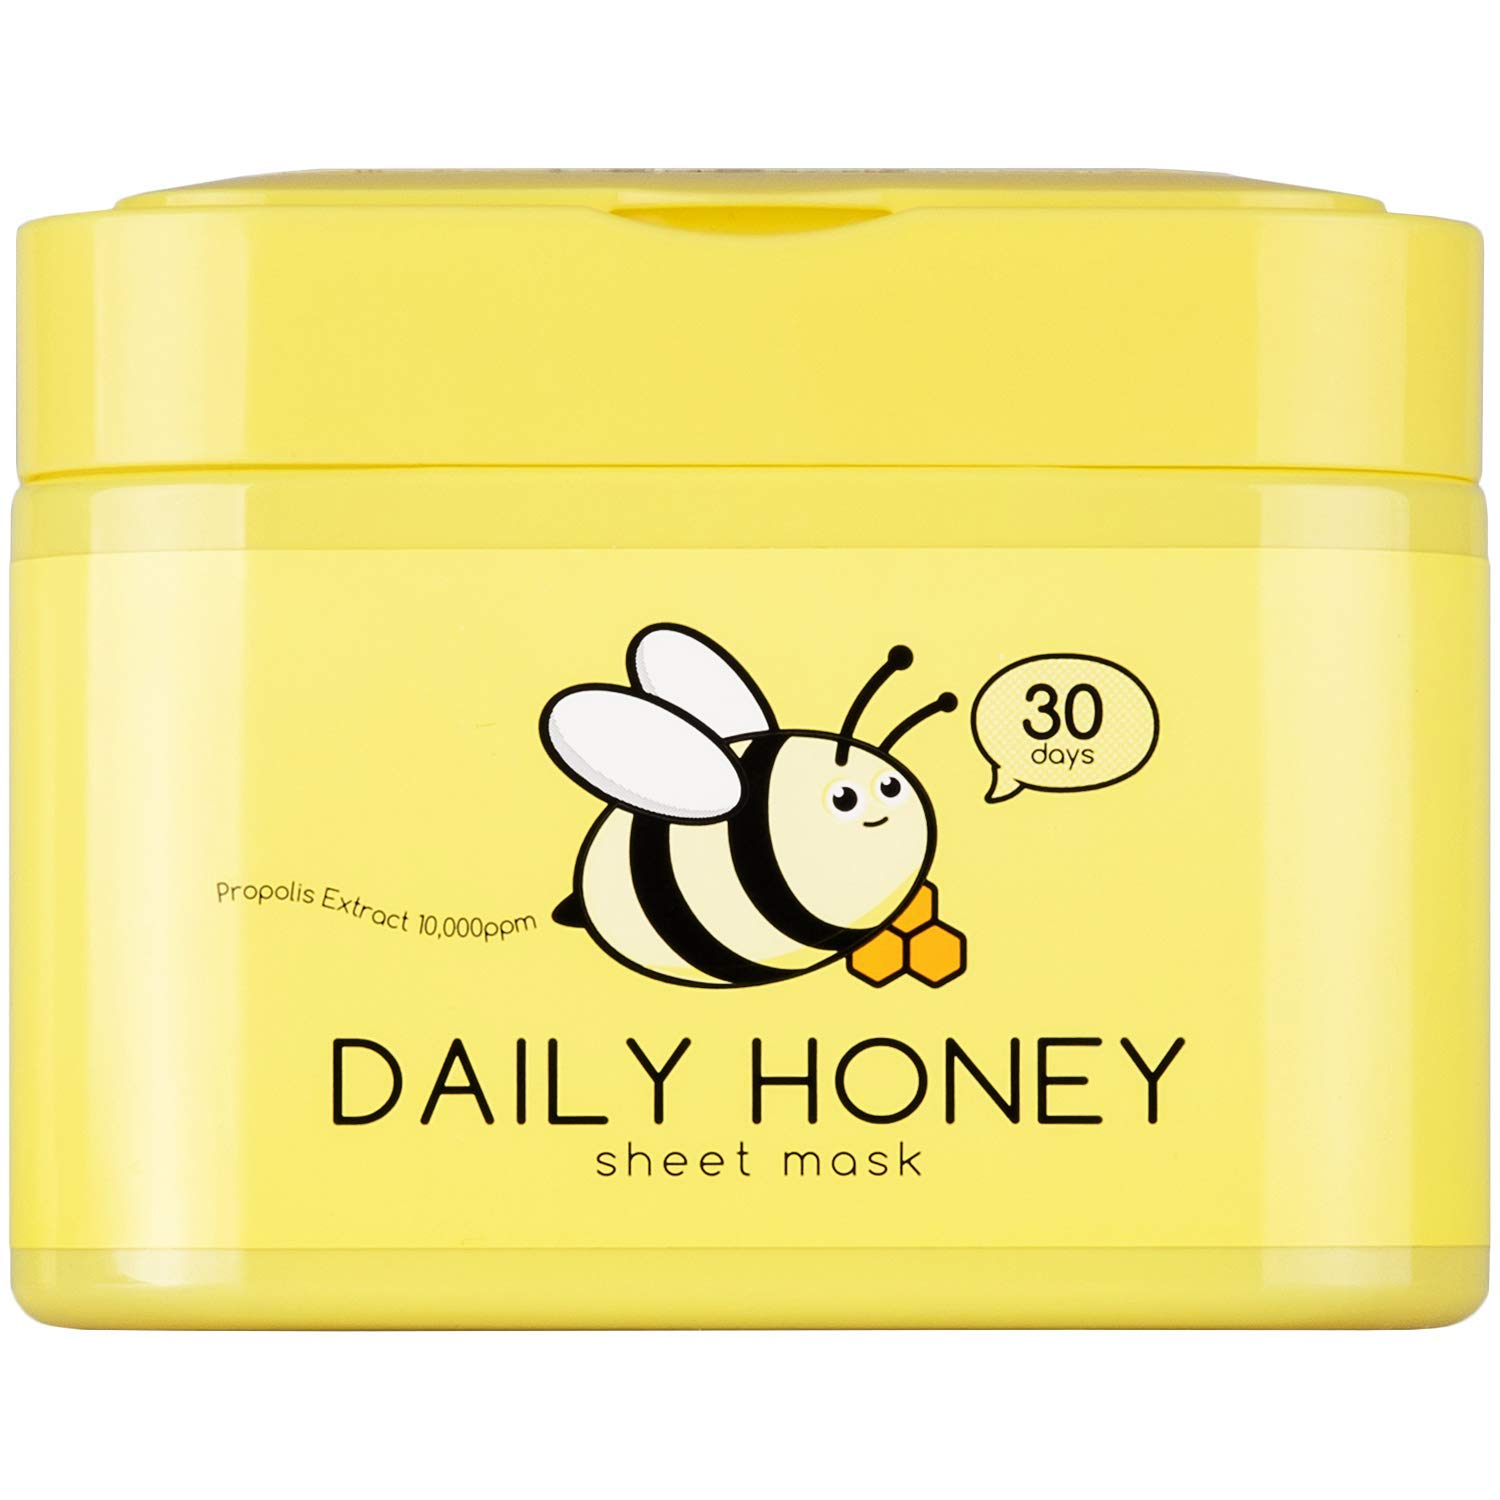 QTBT Daily Honey Sheet Mask with Propolis Extract 10000ppm, Moisturizing Korean Face Mask, Pack of 30 Sheets, EWG Verified